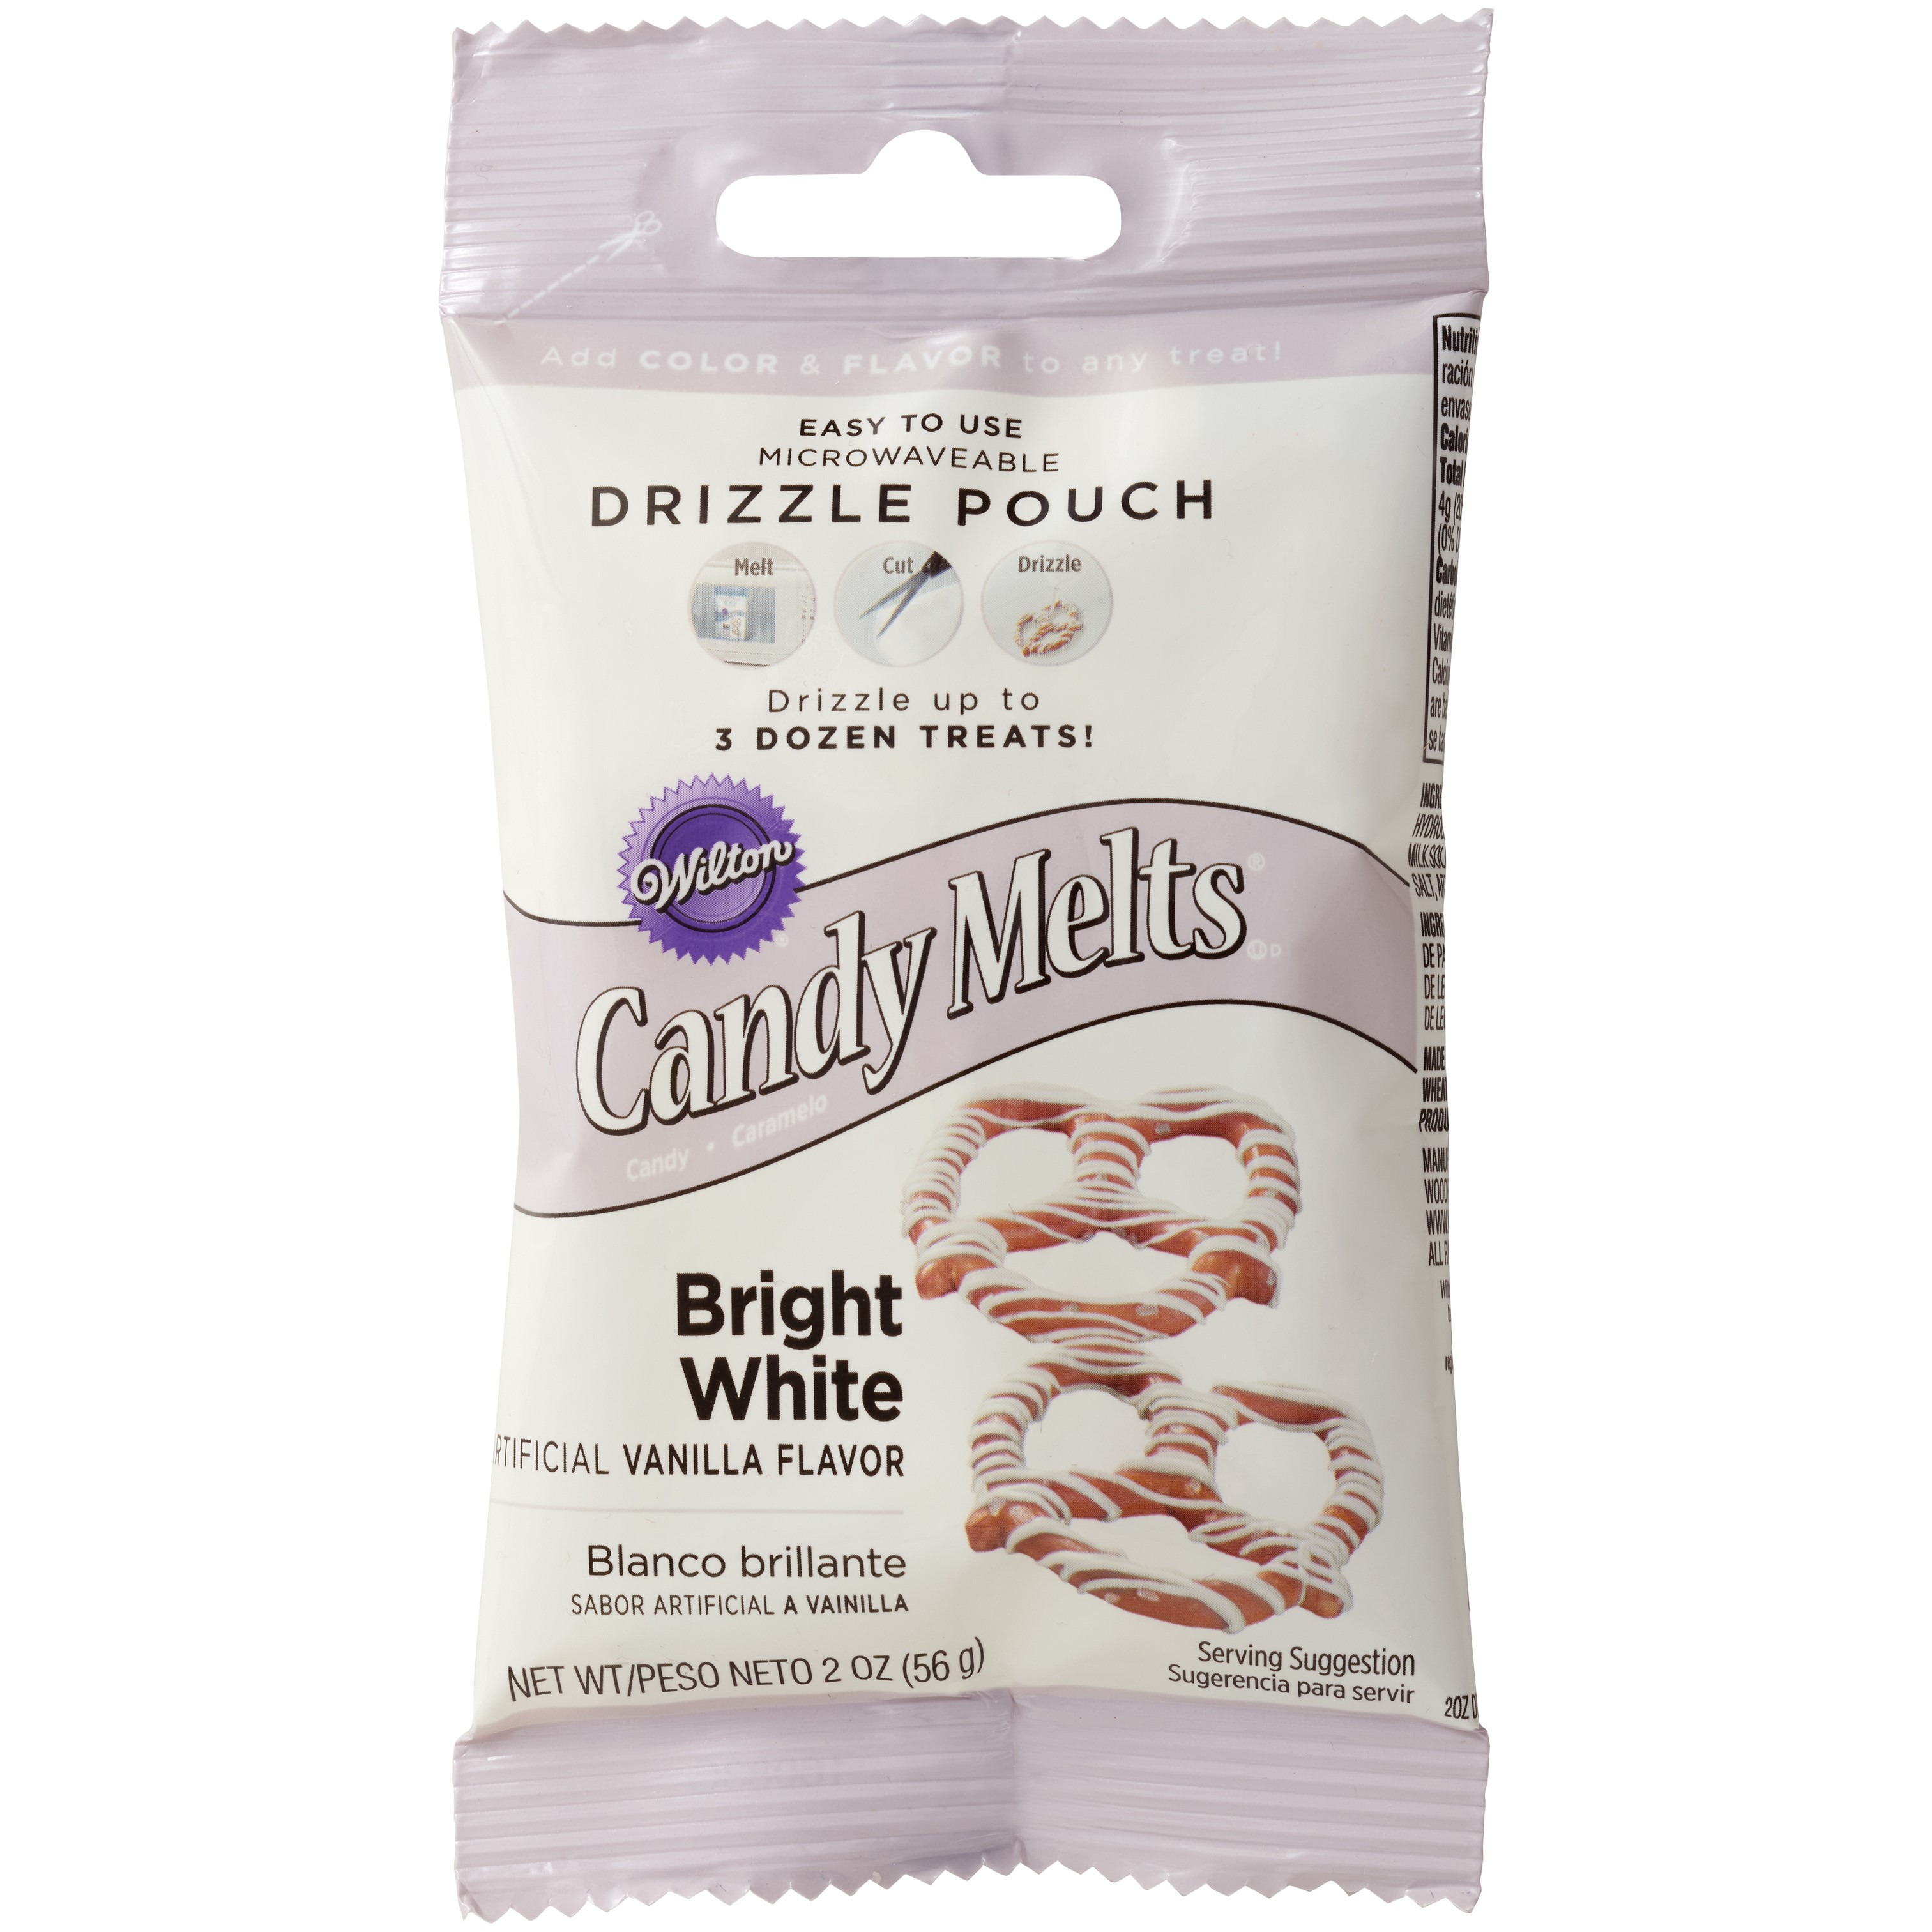 Wilton Candy Melt Drizzle Pouch, Bright White, 2 oz.